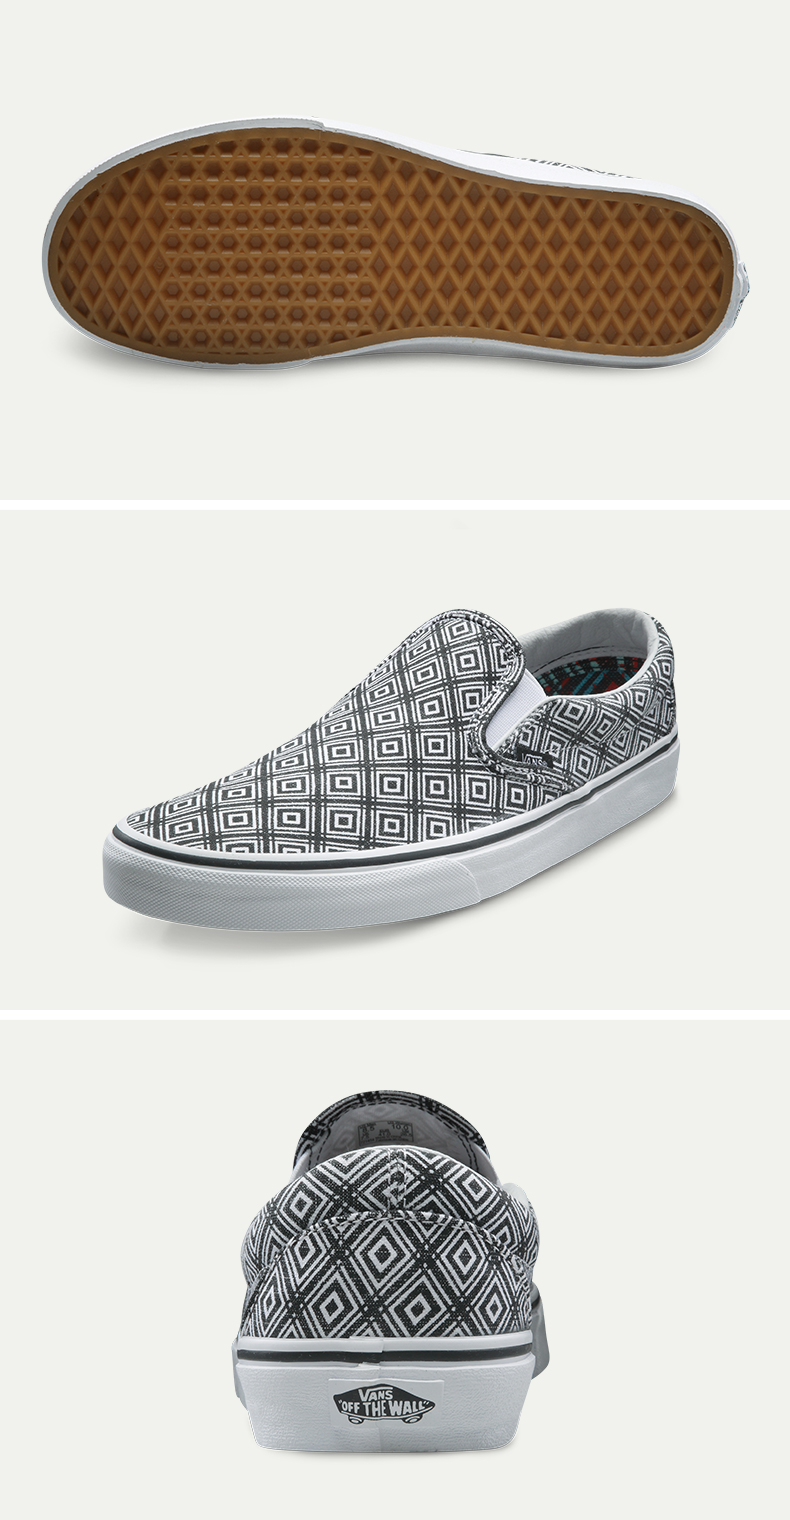 Intersport Original Vans Men's Skateboarding Shoes Sports Shoes Canvas Shoes Sneakers free shipping